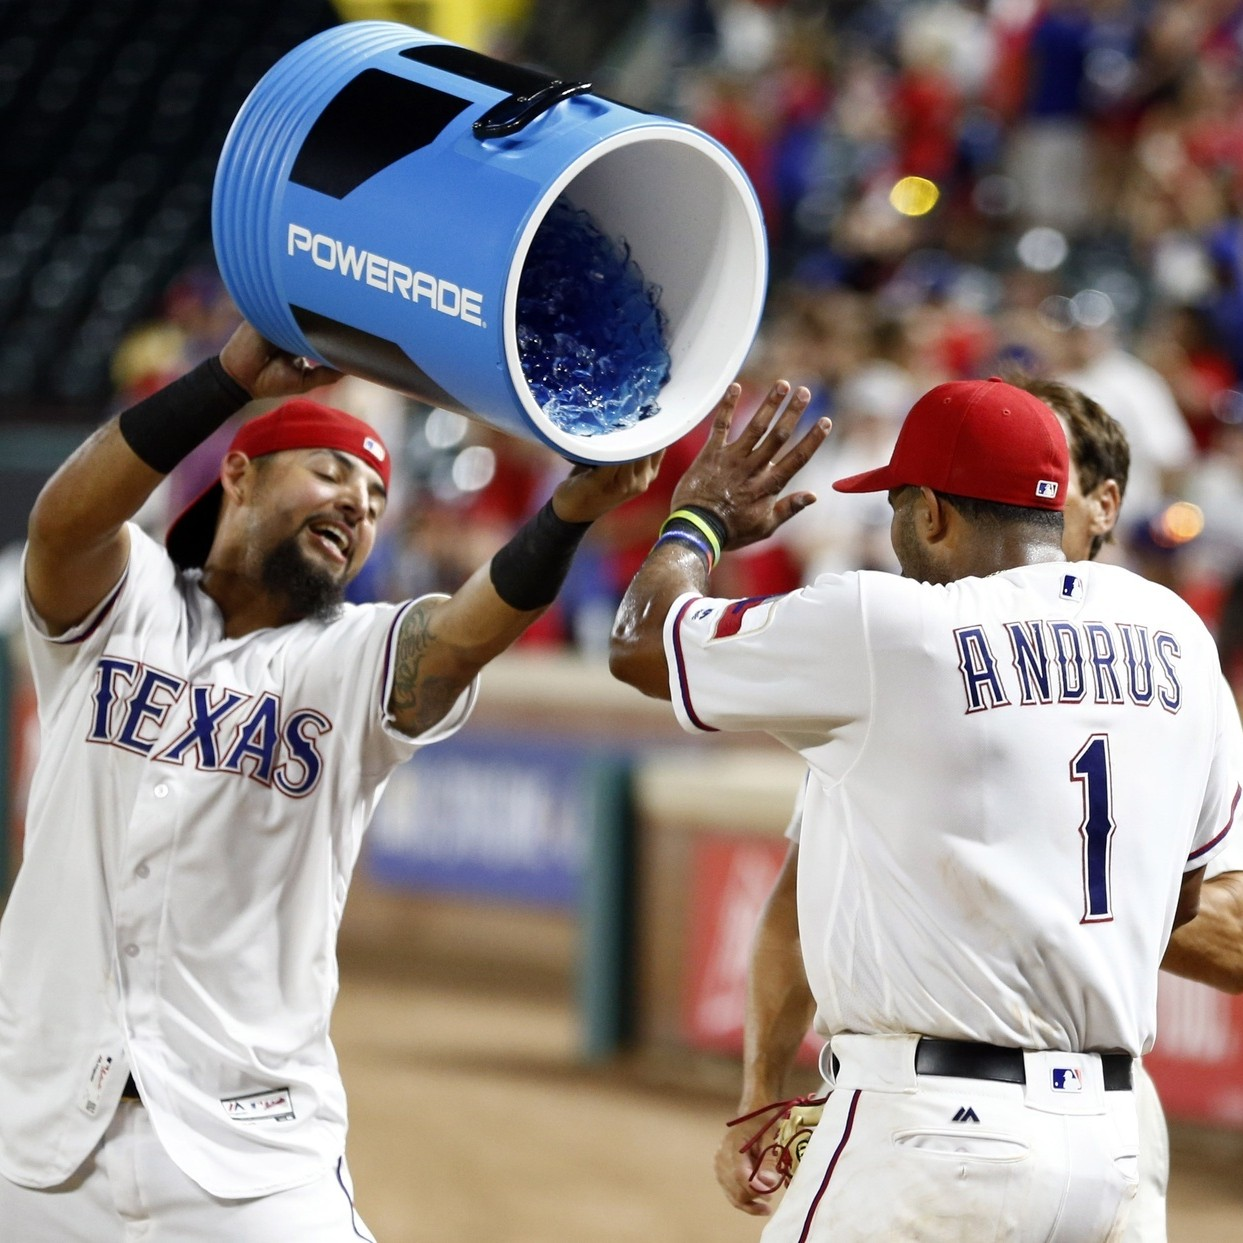 The-resilient-texas-rangers-are-back-to-terrorizing-the-american-league-1466630504.jpg?crop=0